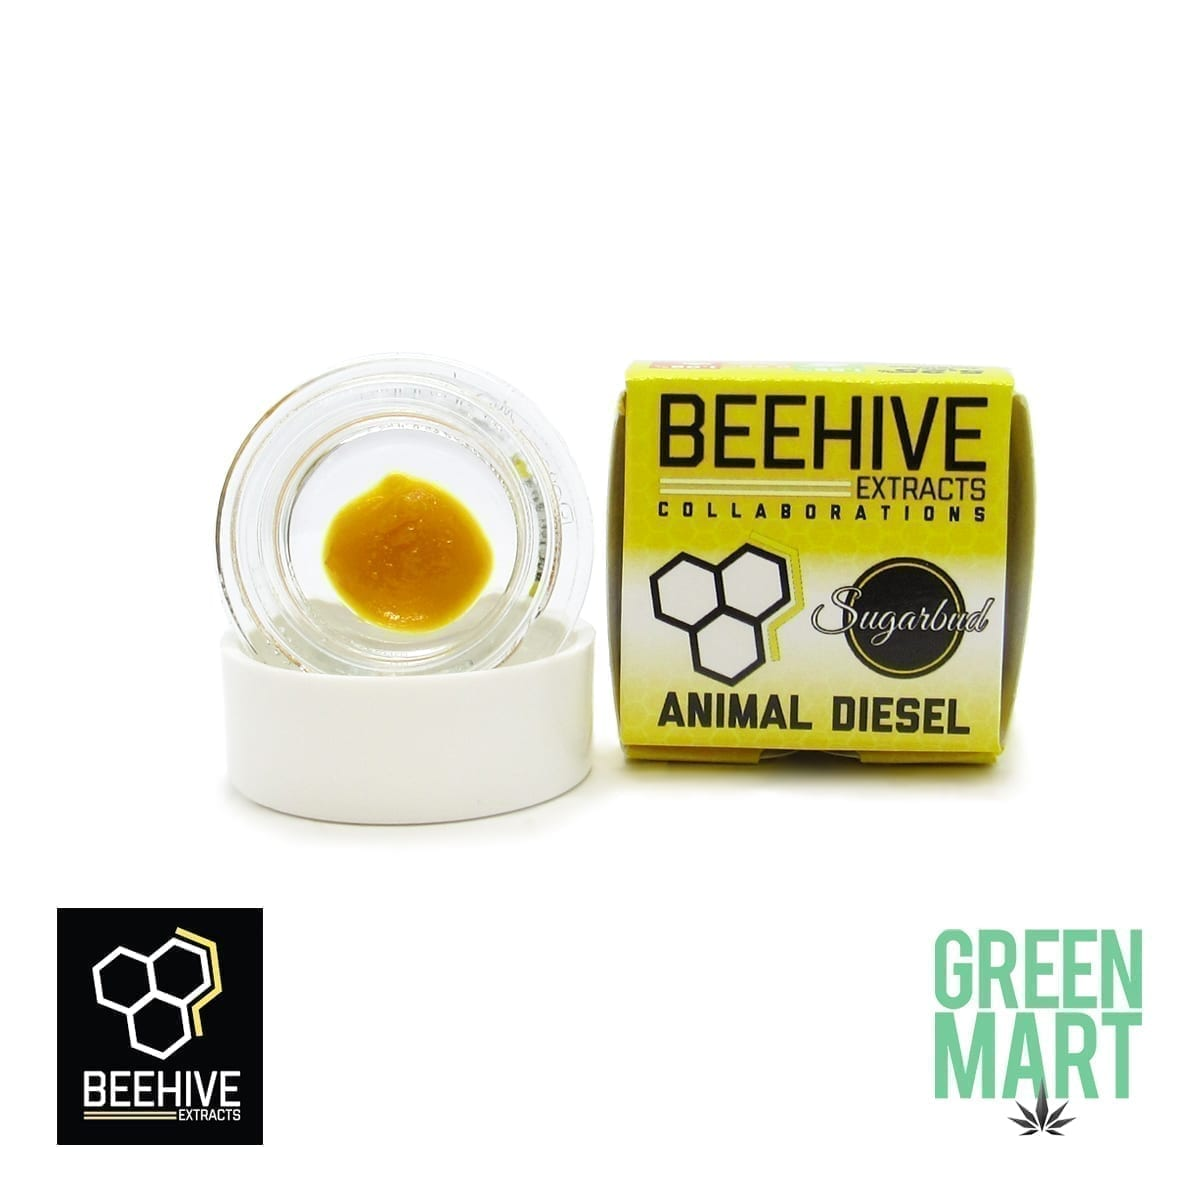 Bee Hive Extracts - Animal Diesel